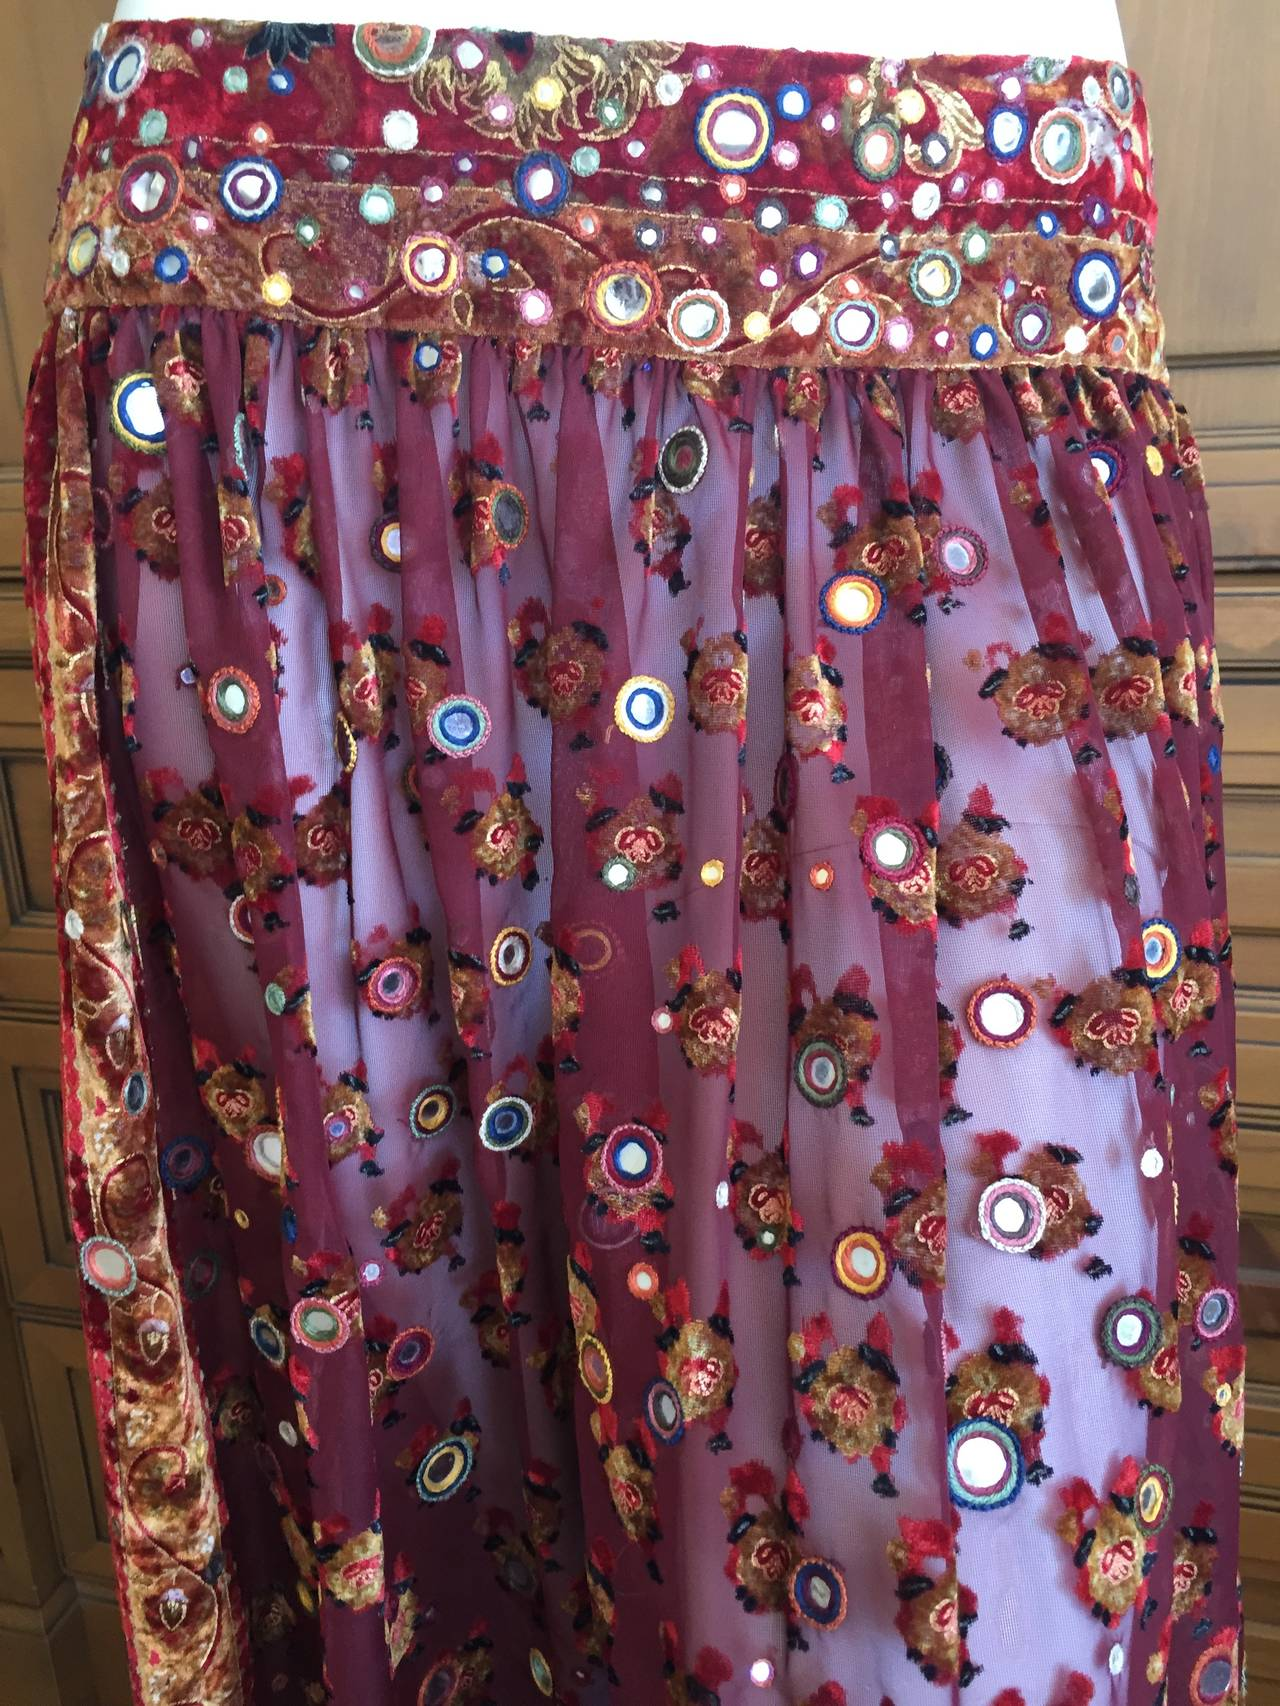 Oscar de la Renta Vintage Boho Gypsy Skirt with Mirrors 8